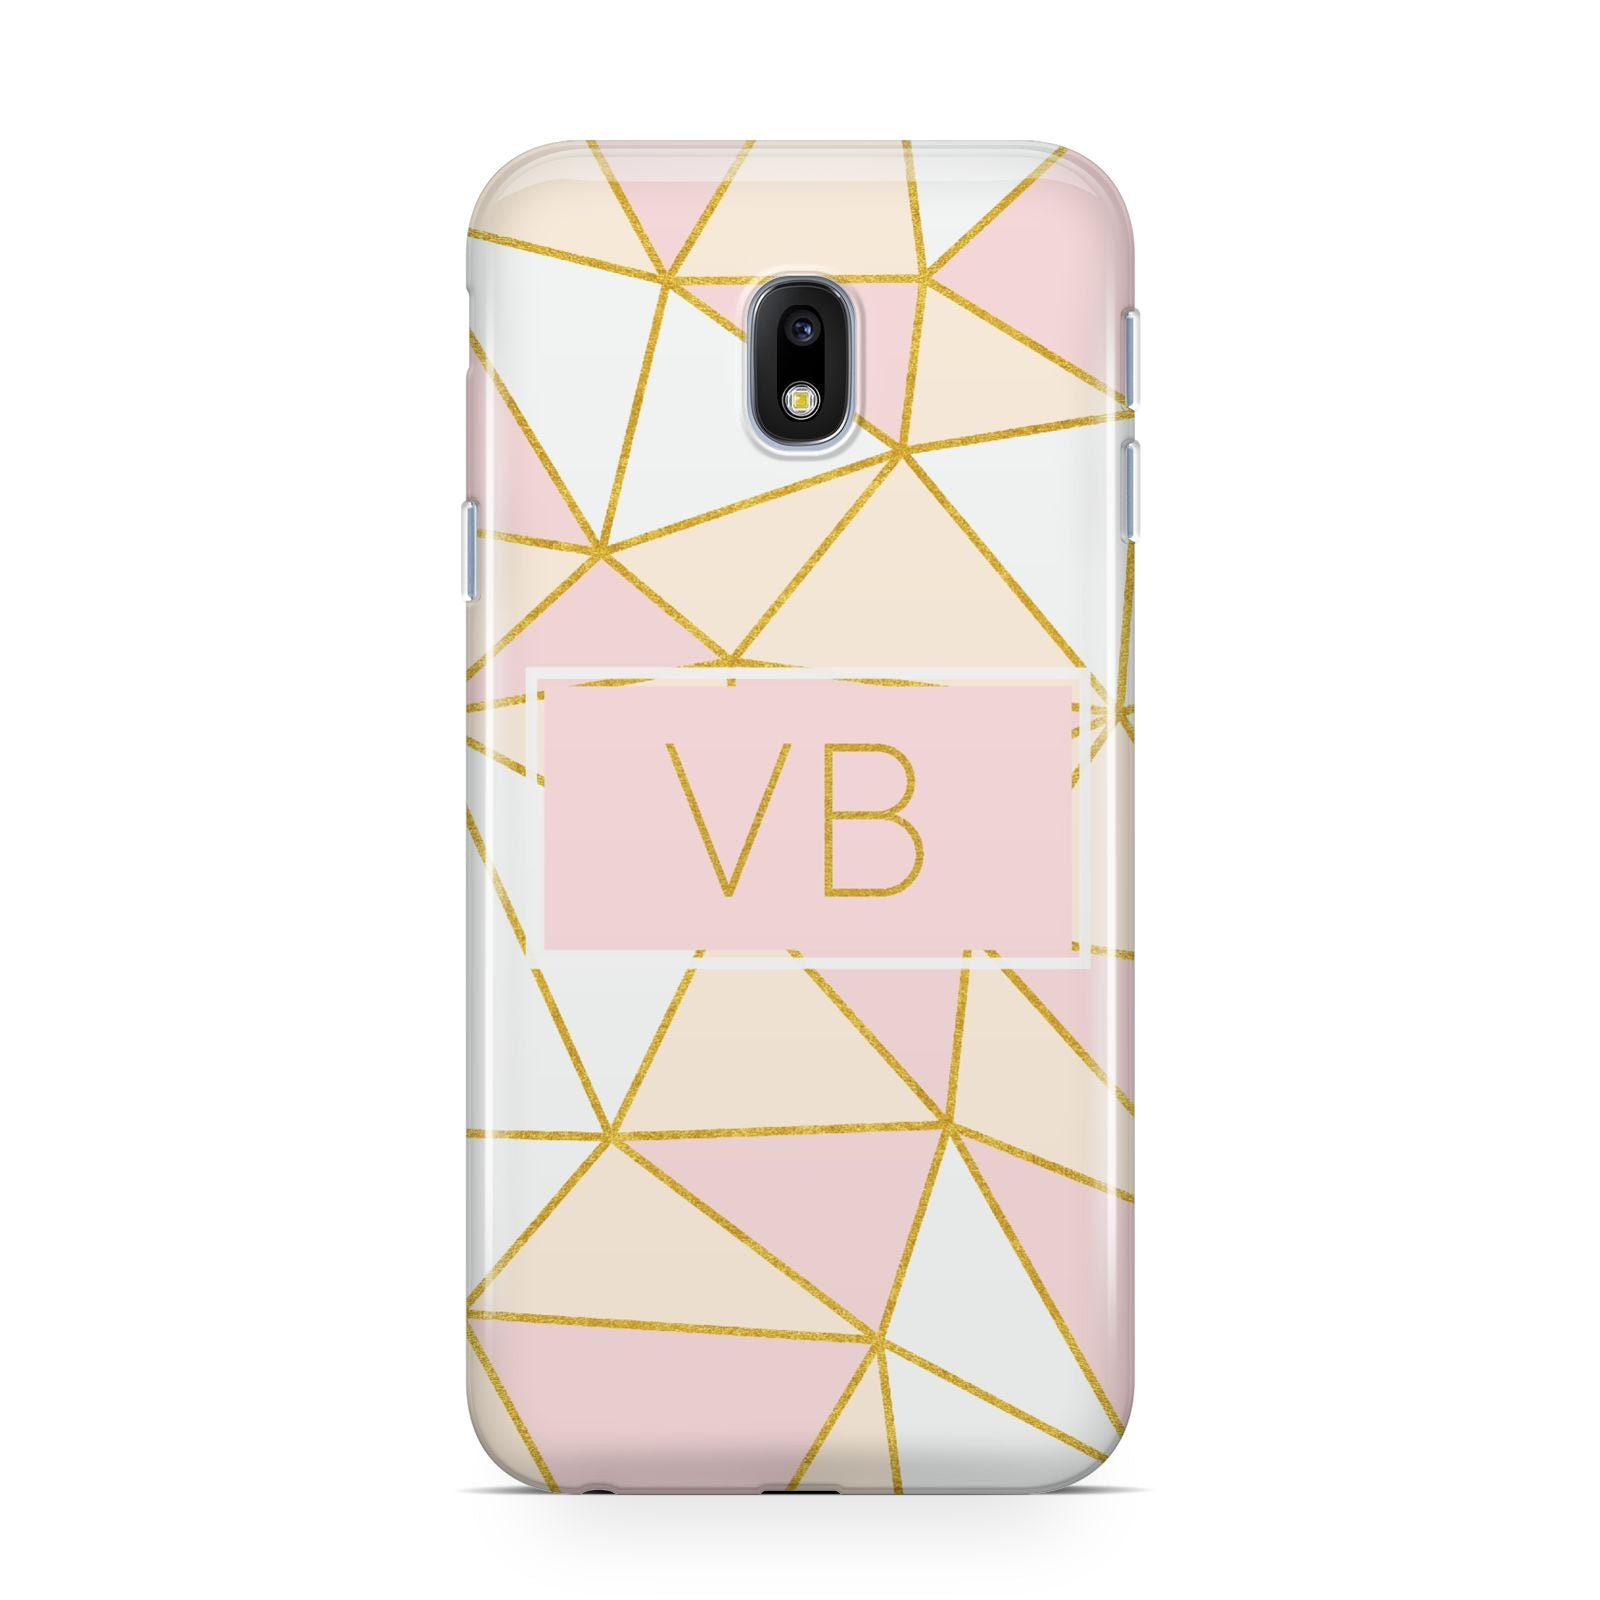 Personalised Gold Initials Geometric Samsung Galaxy J3 2017 Case